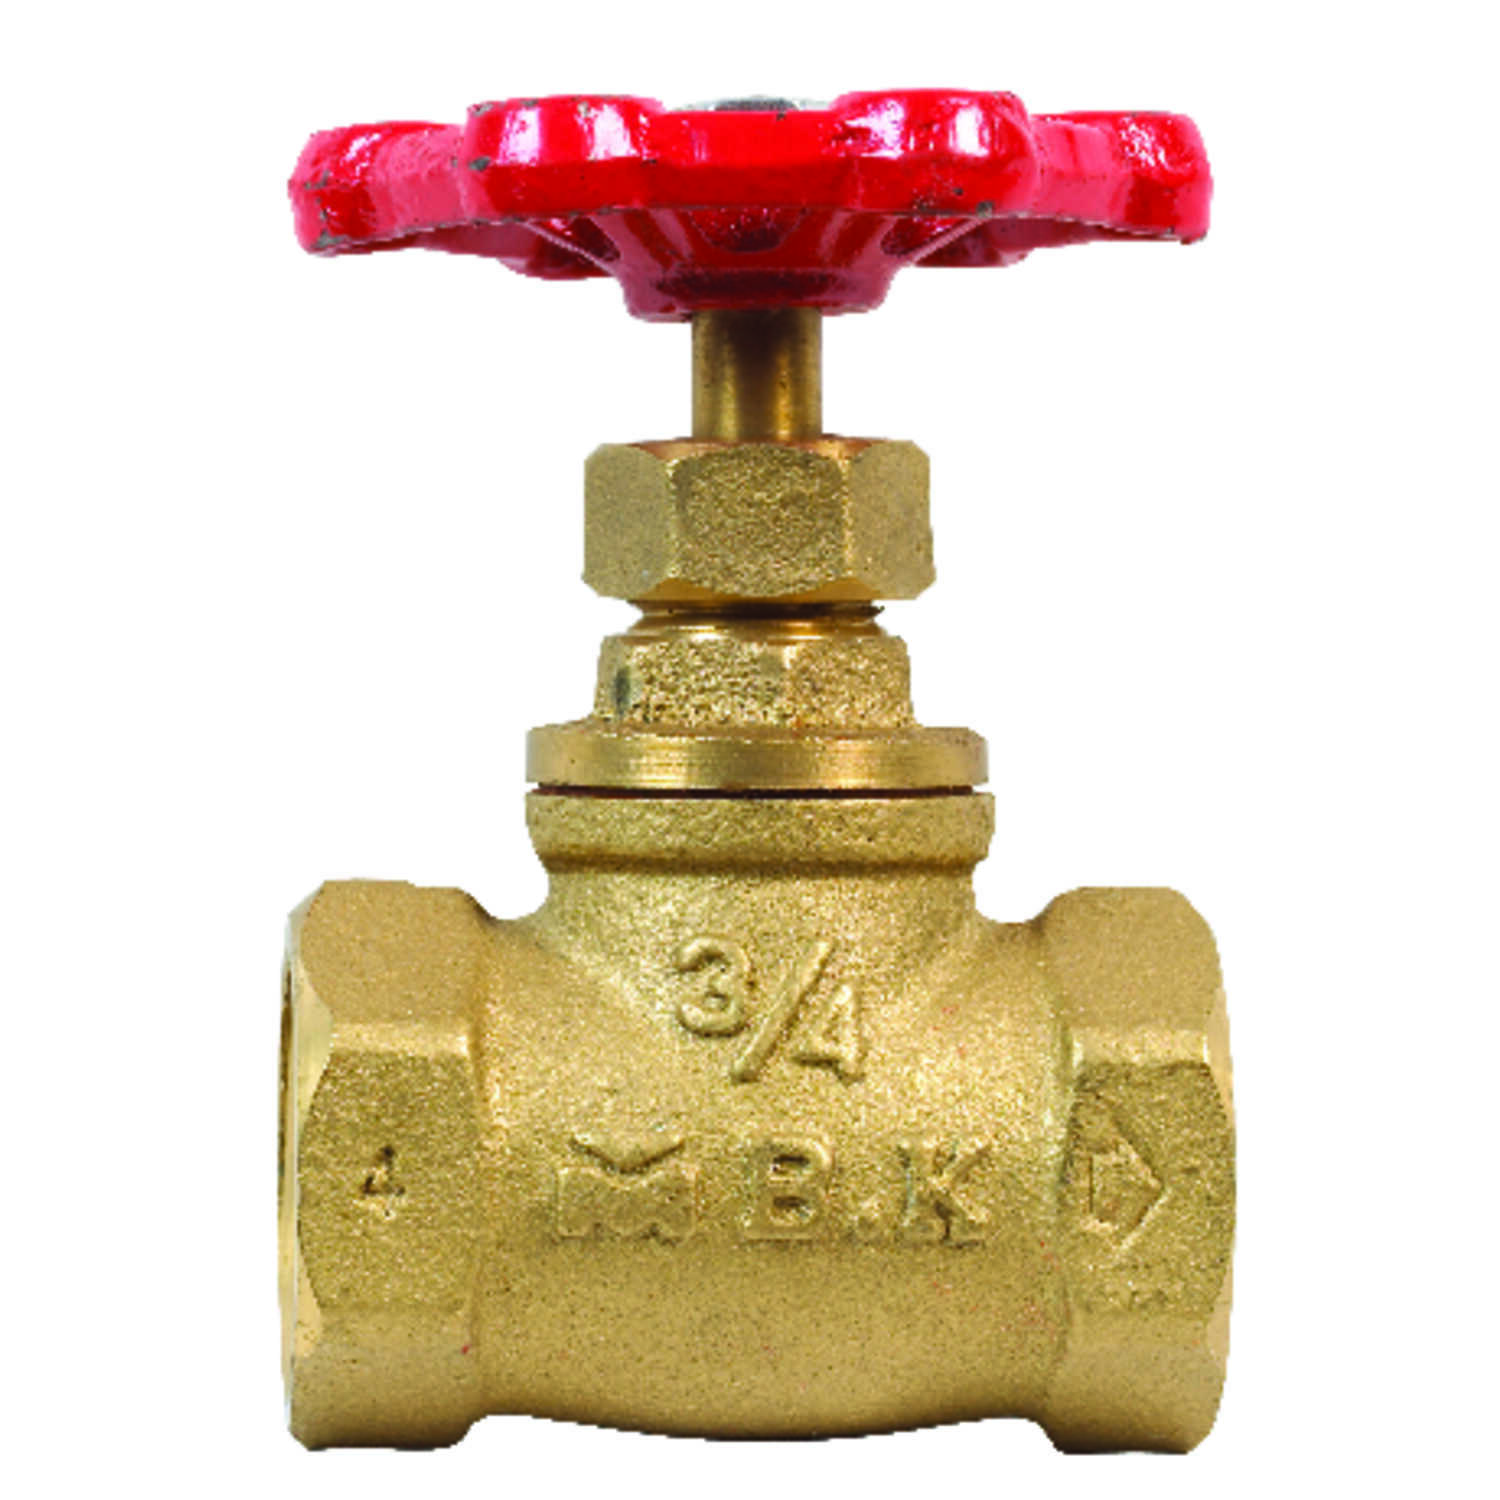 ProLine  3/4 in.  x 3/4 in.  Stop Valve  Stop and Waste  Brass